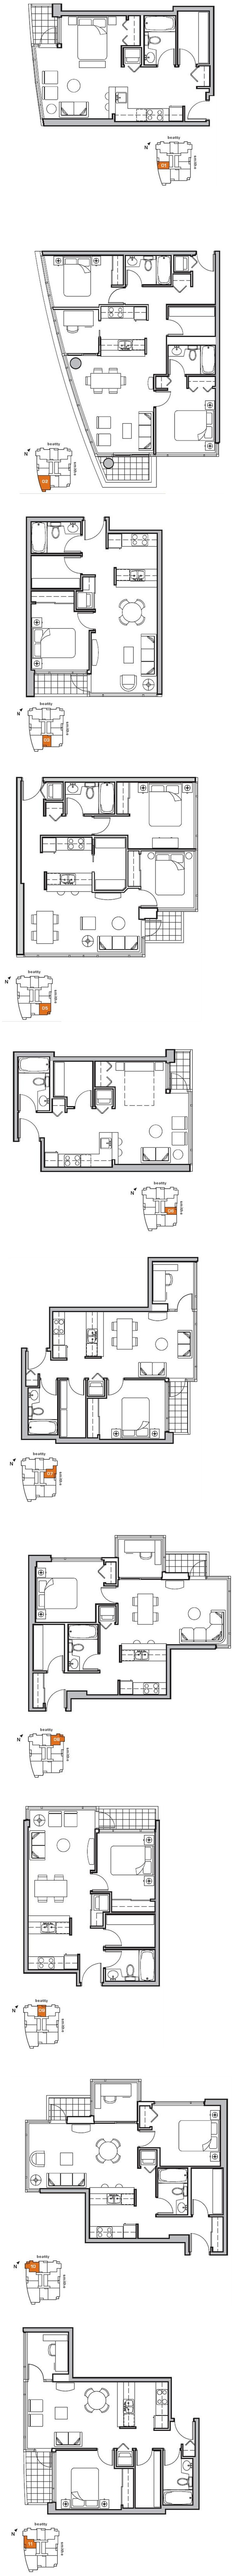 928 beatty floor plans (JPG)